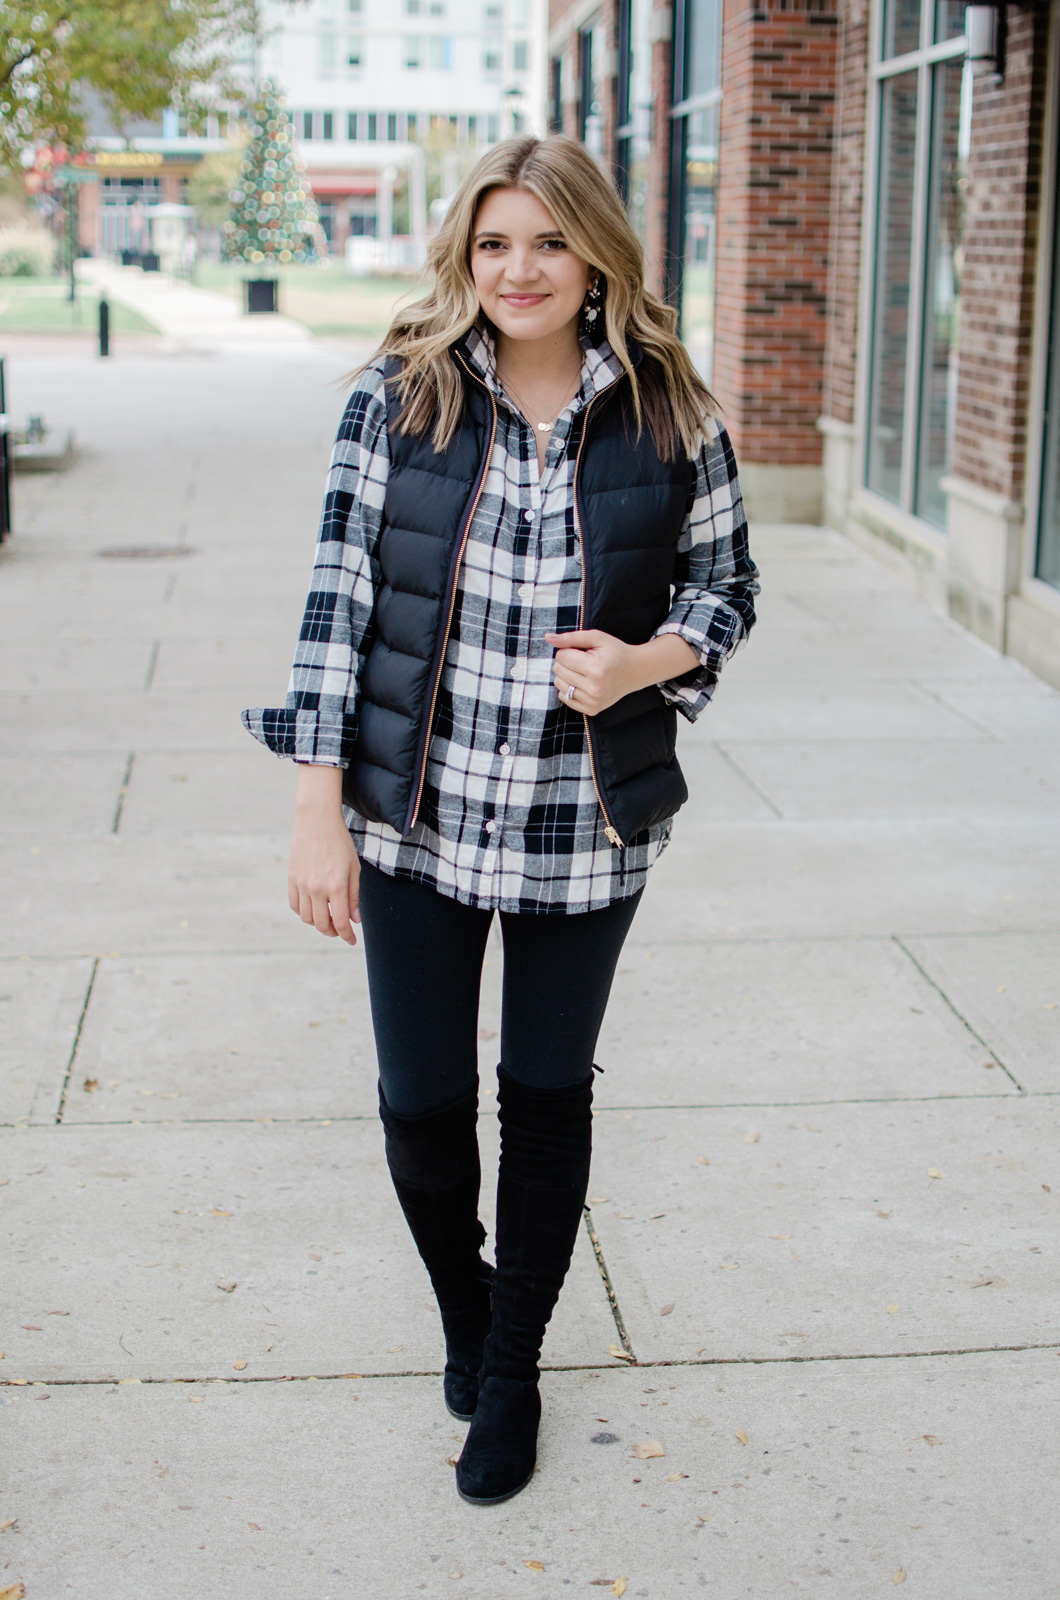 six puffer vest outfits - head to the blog to see all the ideas and get details of this plaid tunic top look! bylaurenm.com